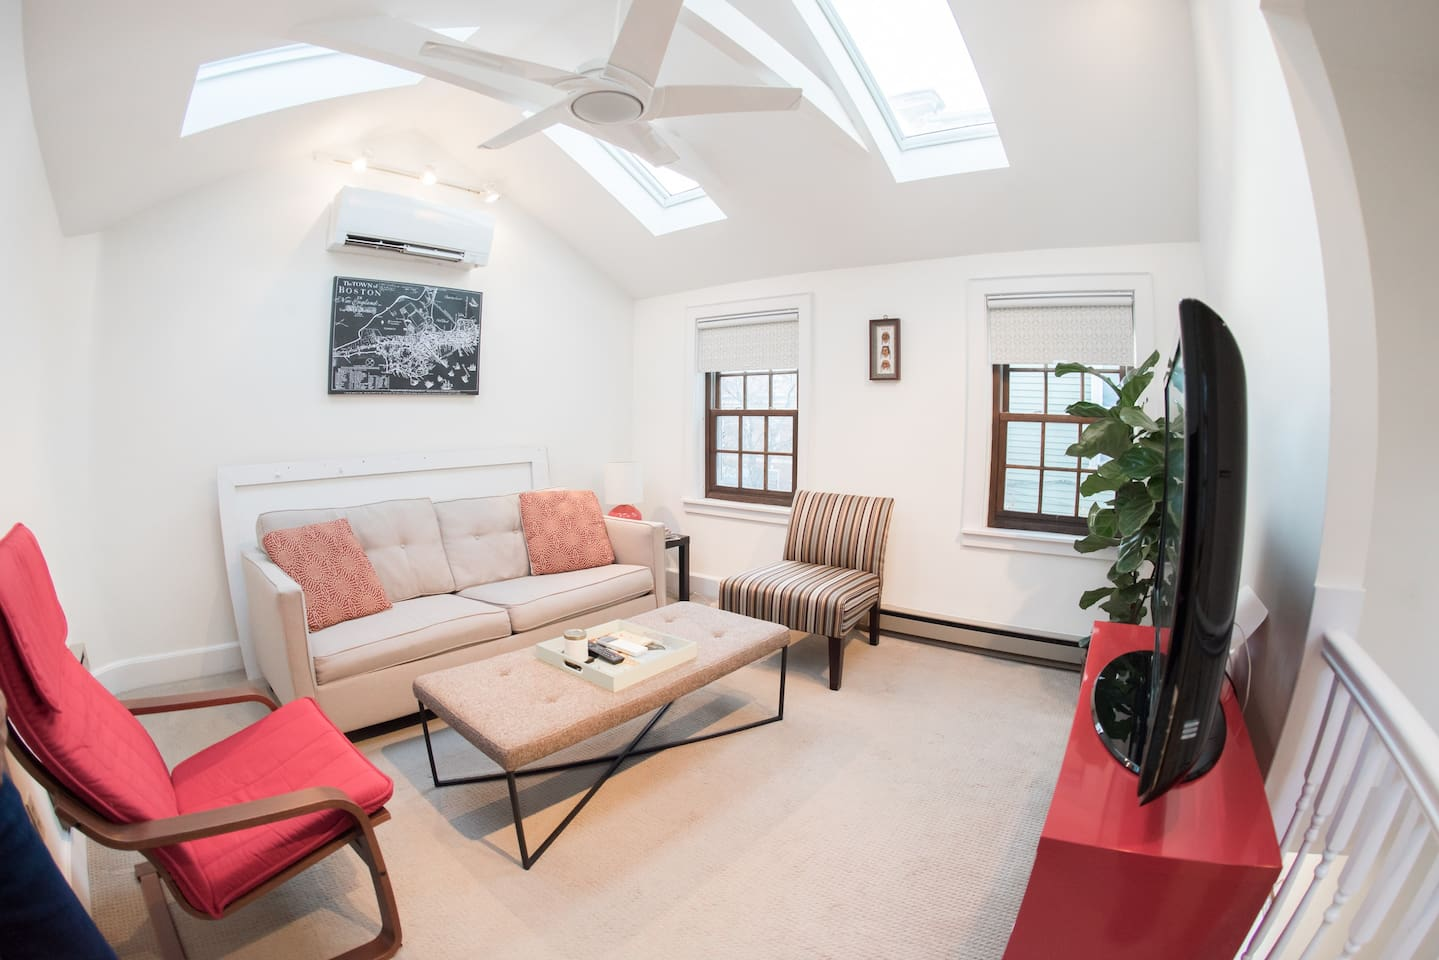 Airy and bright living room with vaulted ceilings. Couch converts into a queen bed. Living room is on second floor.